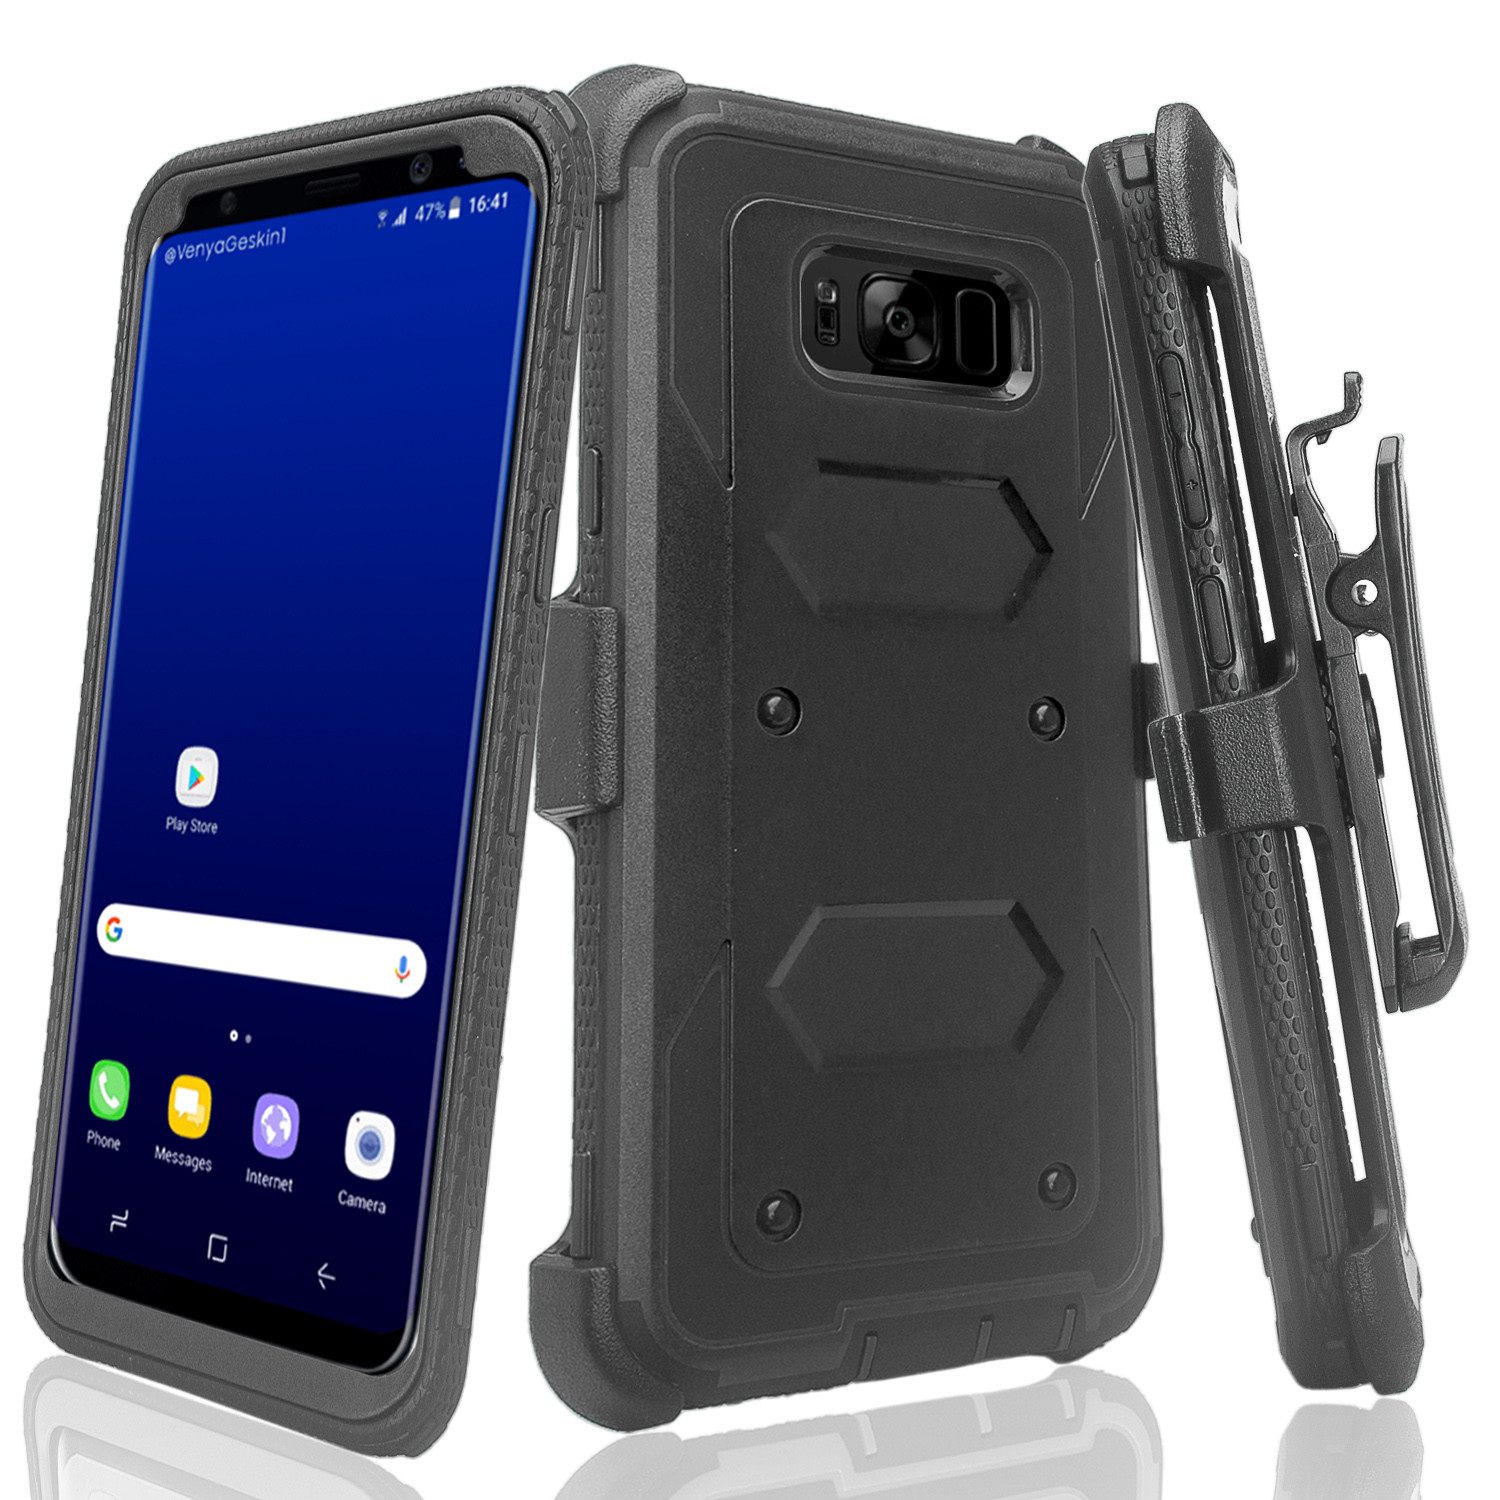 Samsung Galaxy S8 Case, SM-G950 Case, Triple Protection + [Tempered Glass Screen Protector] Heavy Duty Rotating Swivel Holster Shell Combo - Black